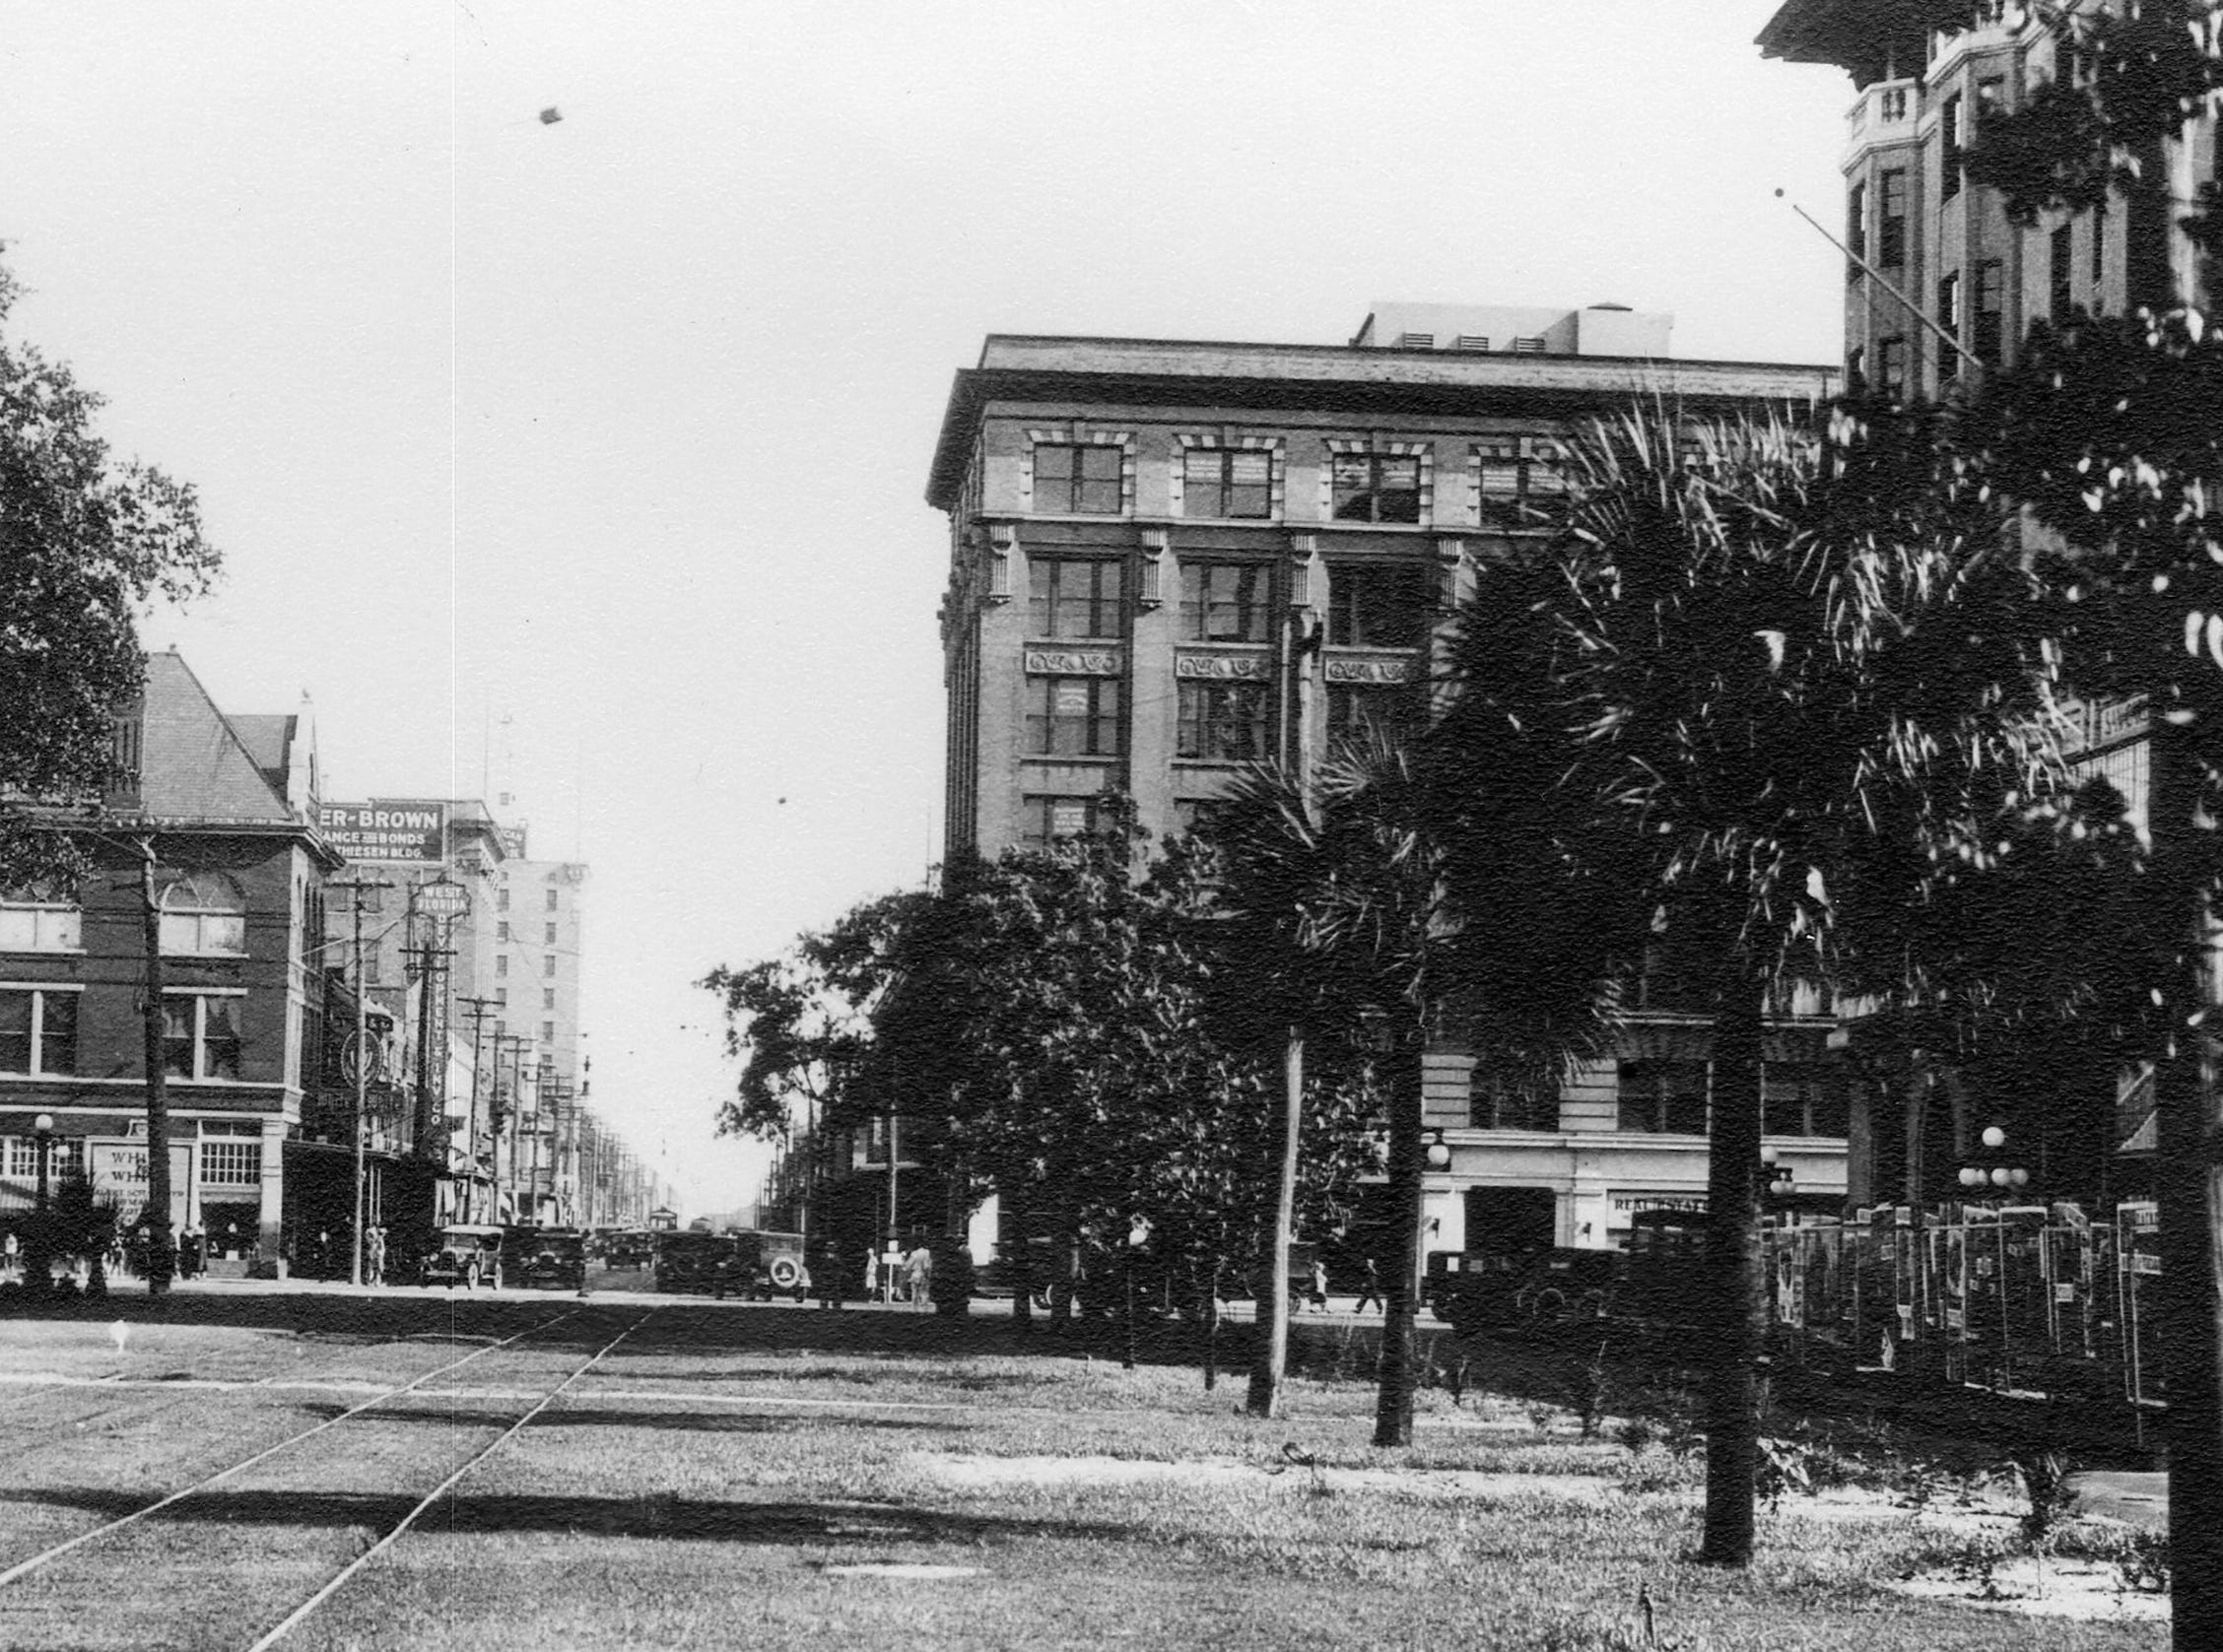 Looking south on Palafox from Garden Street, shows street car tracks in the 1920s.